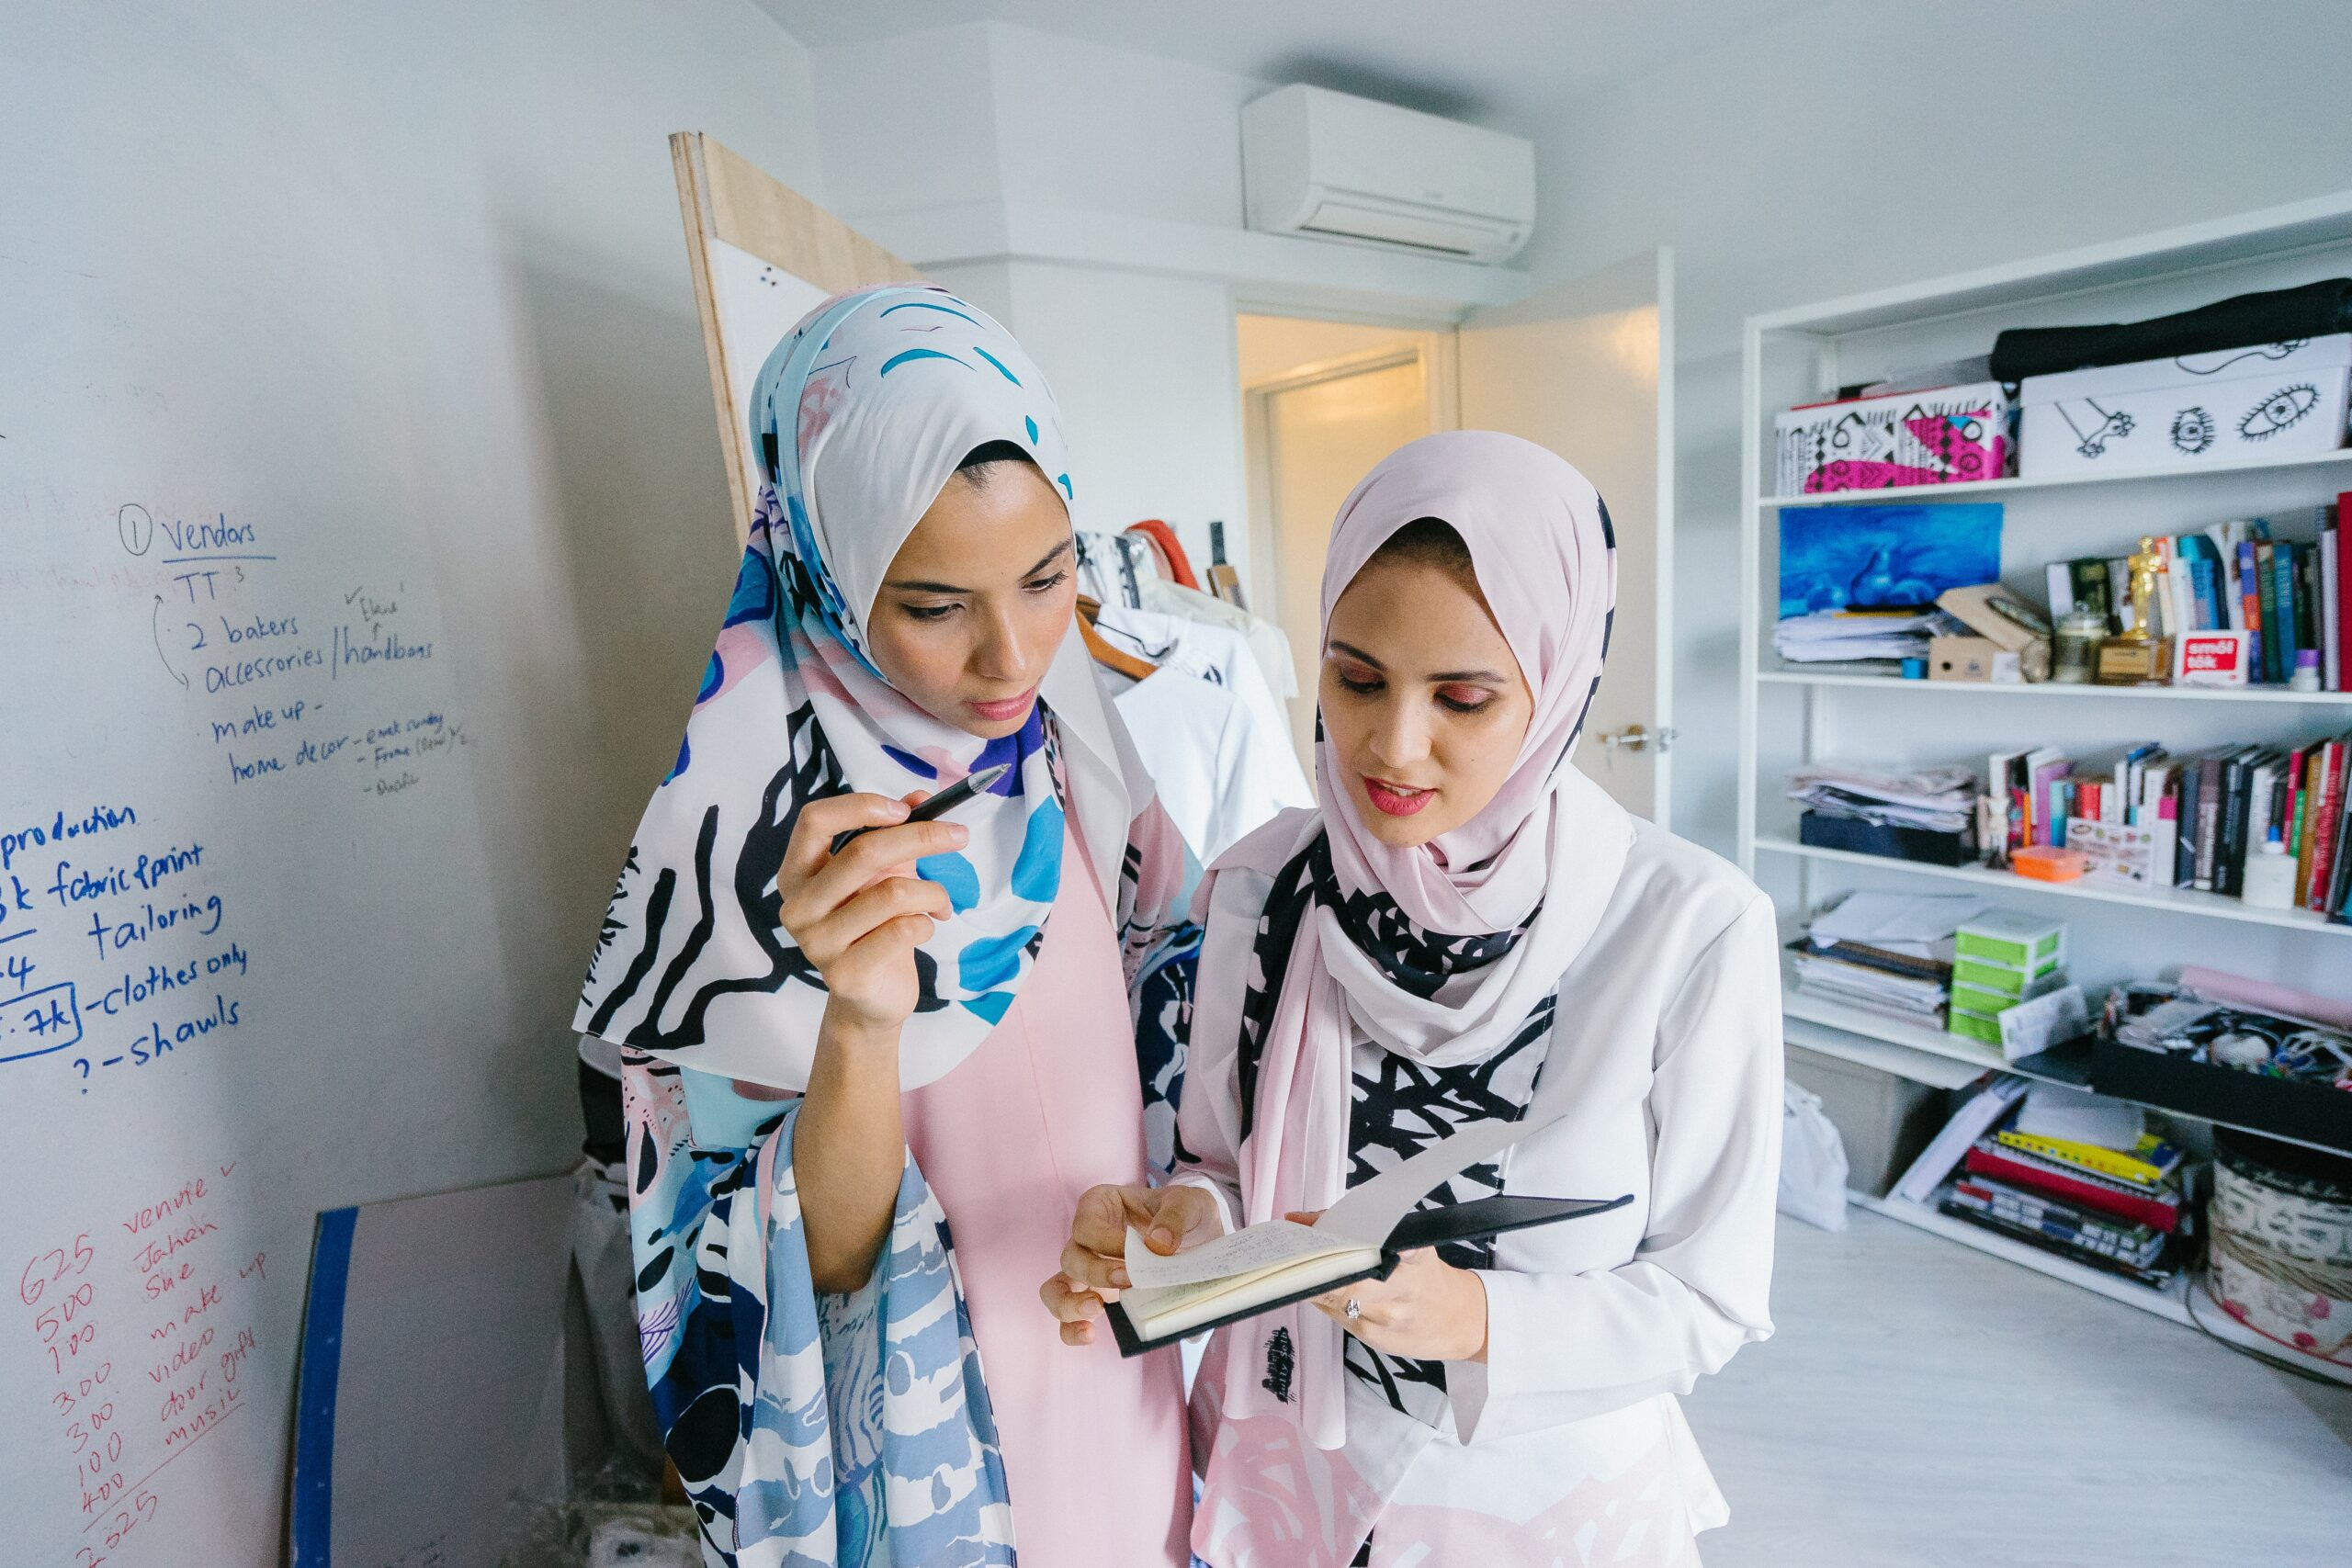 Female Muslim scientists working together on a project